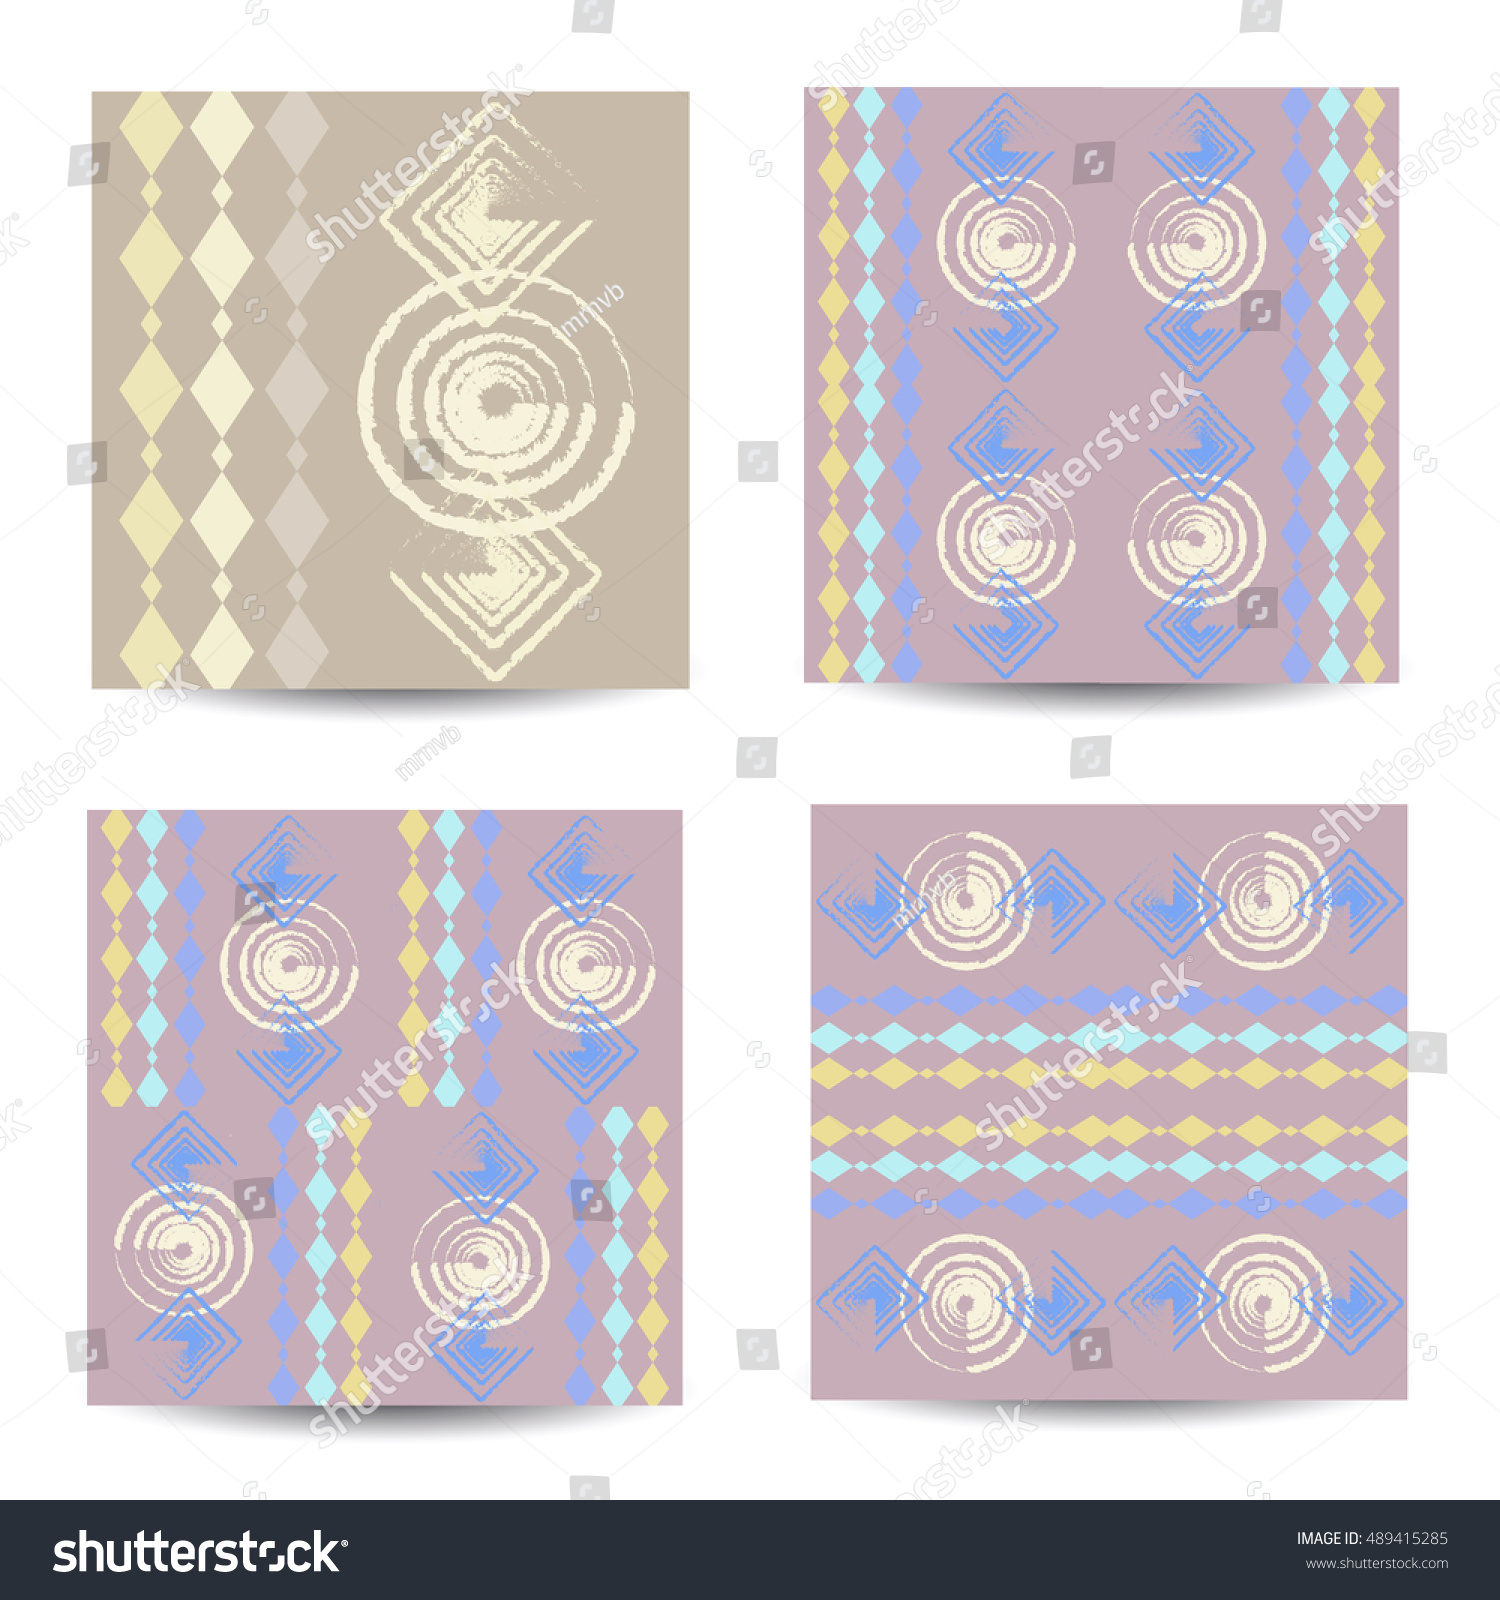 Design ceramic tiles dock examples set stock vector 489415285 design for ceramic tiles with a dock examples set of artistic creative universal cards dailygadgetfo Image collections